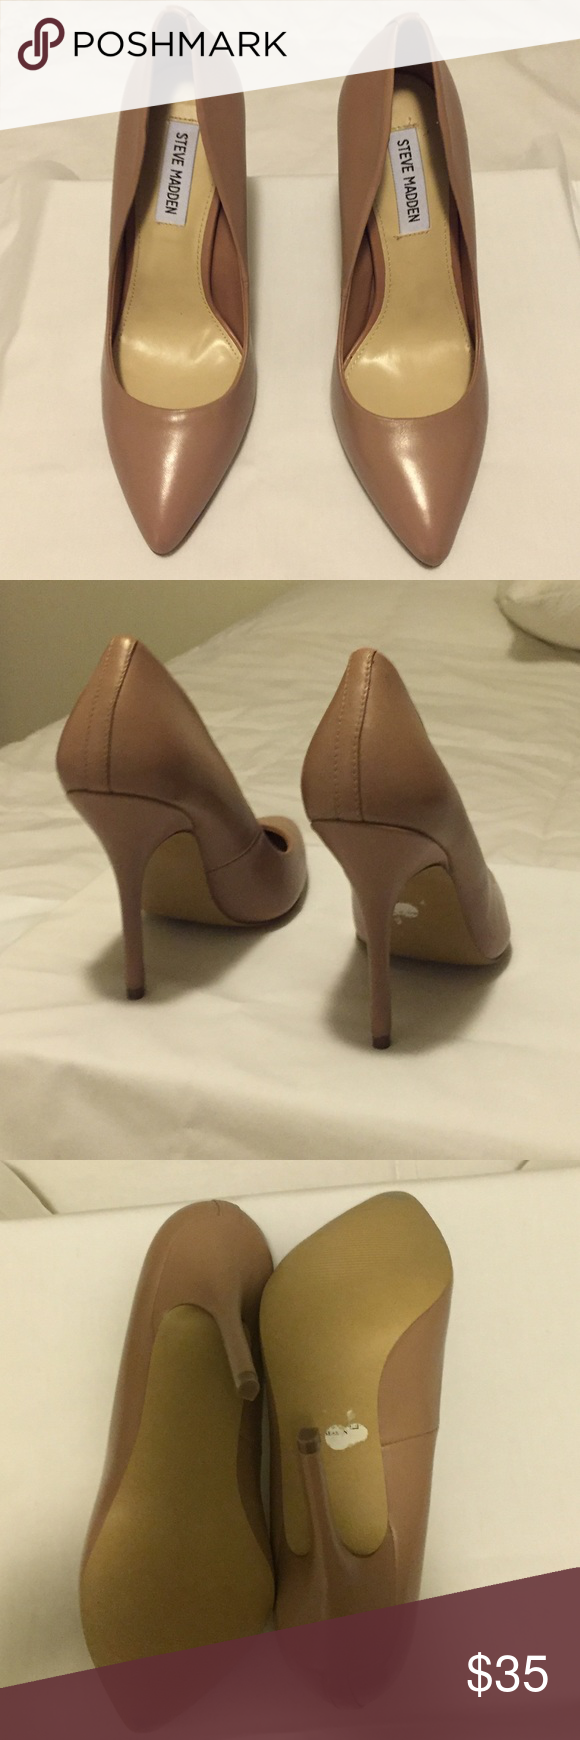 "Steve Madden women's Galleryy pump Beautiful blush color pump. Leather, approximately 4"" heel. Never been used Steve Madden Shoes Heels"